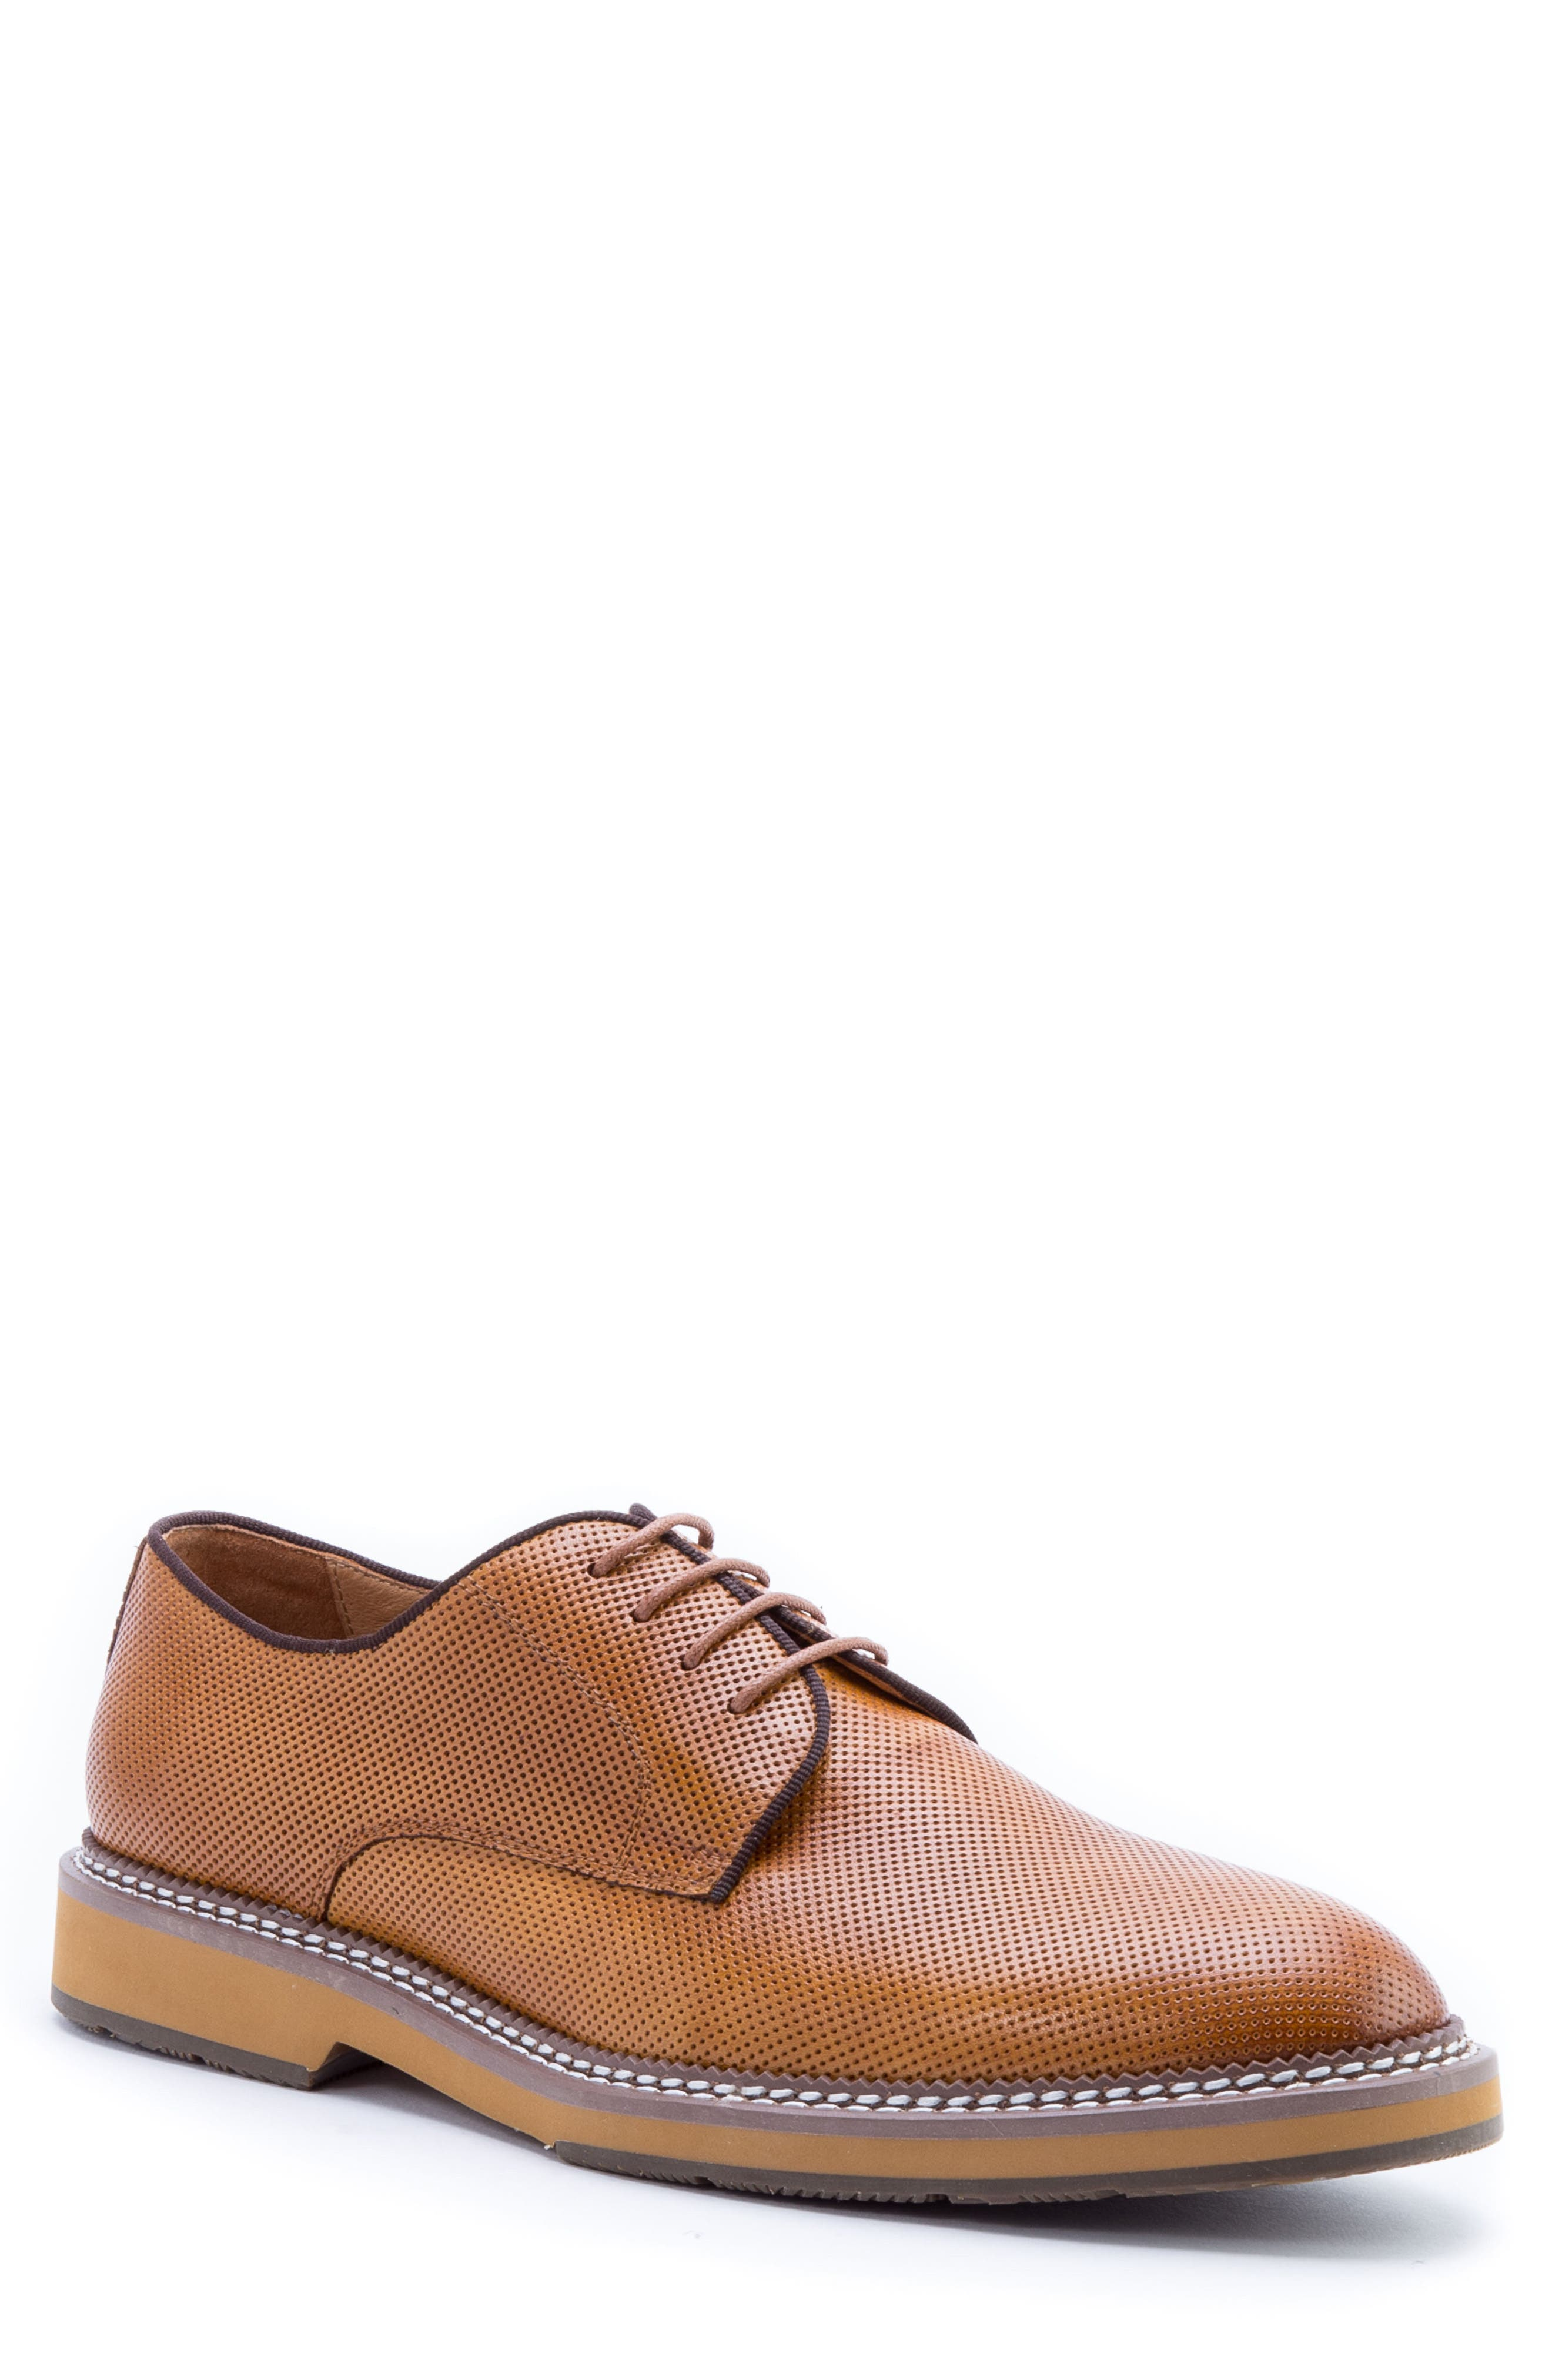 Monticello Perforated Plain Toe Derby,                         Main,                         color, Cognac Leather